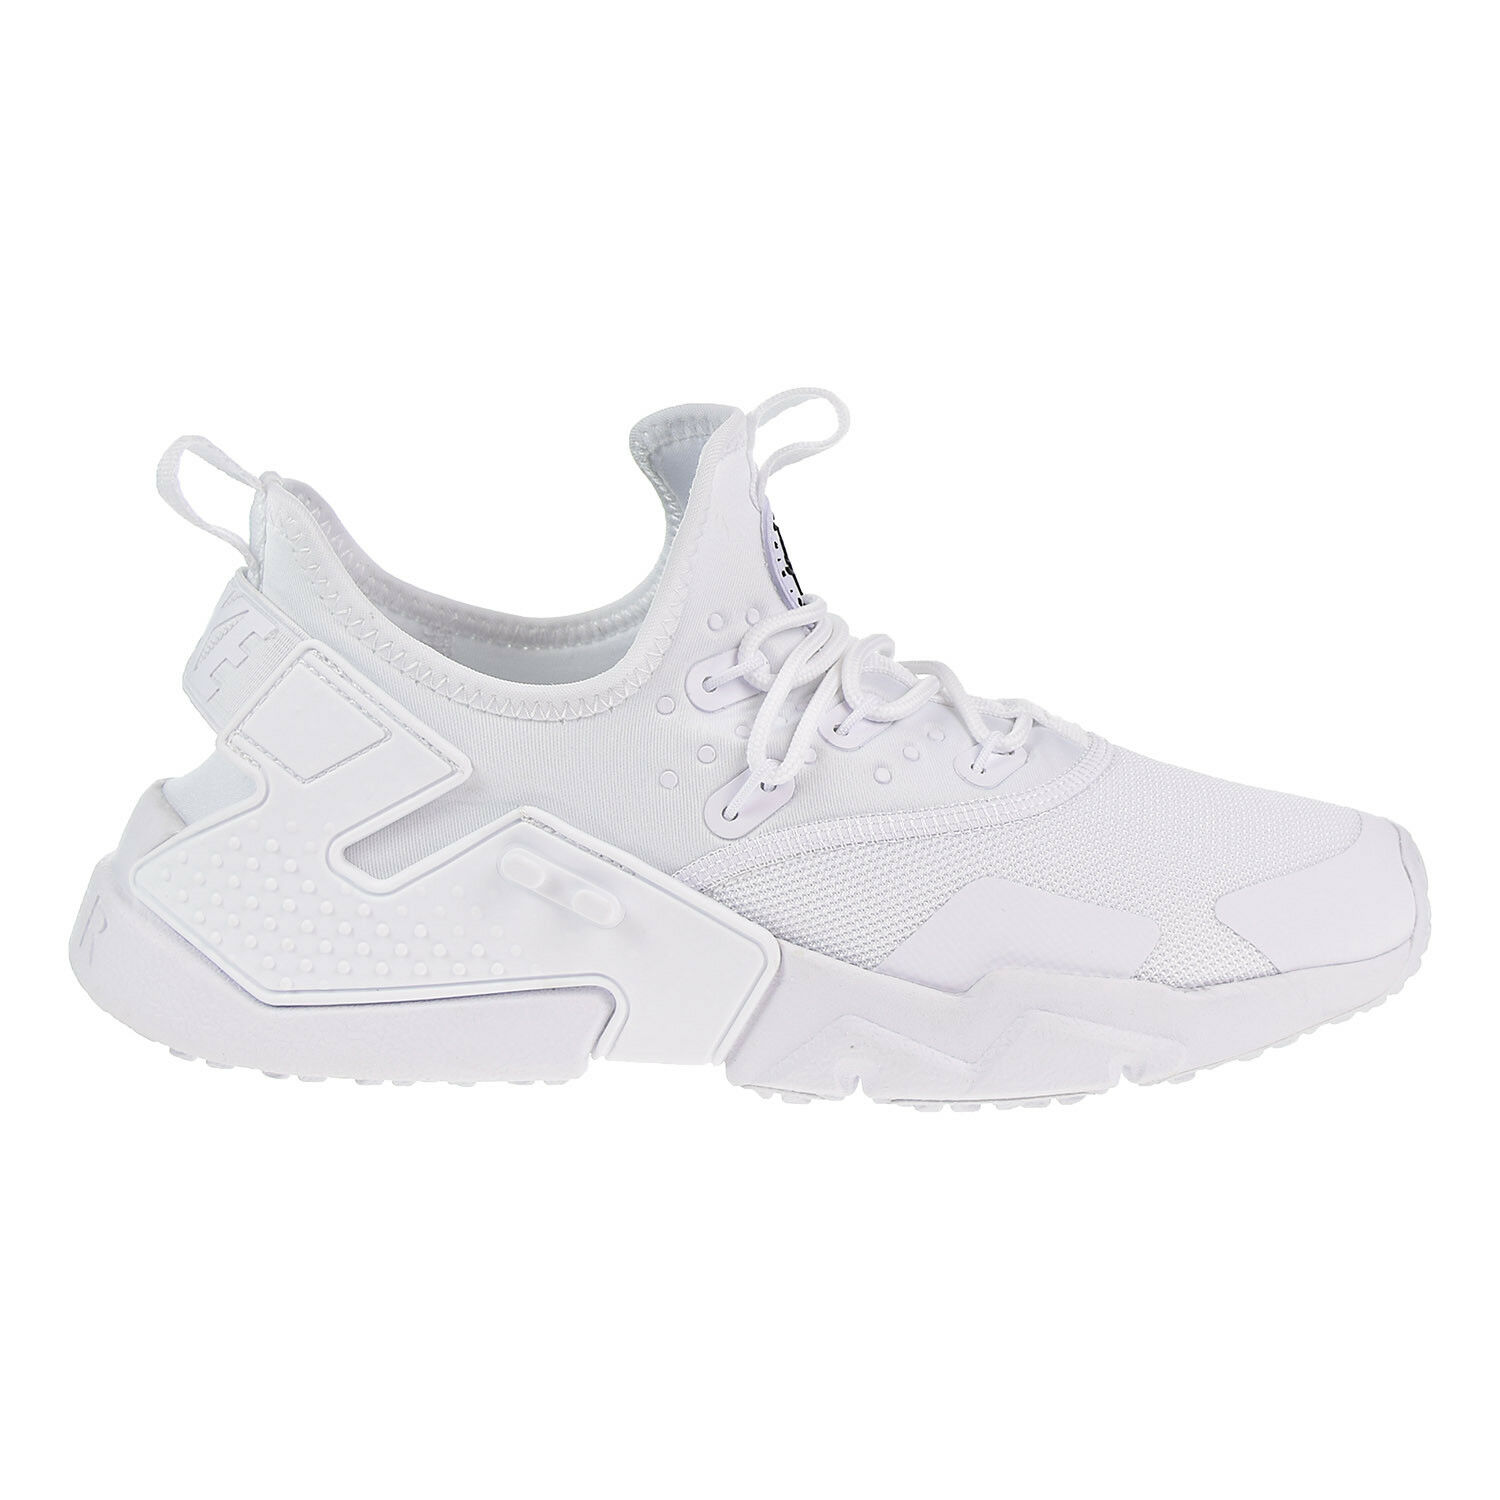 Nike Air Huarache Drift Men's Shoes White/Black AH7334-100